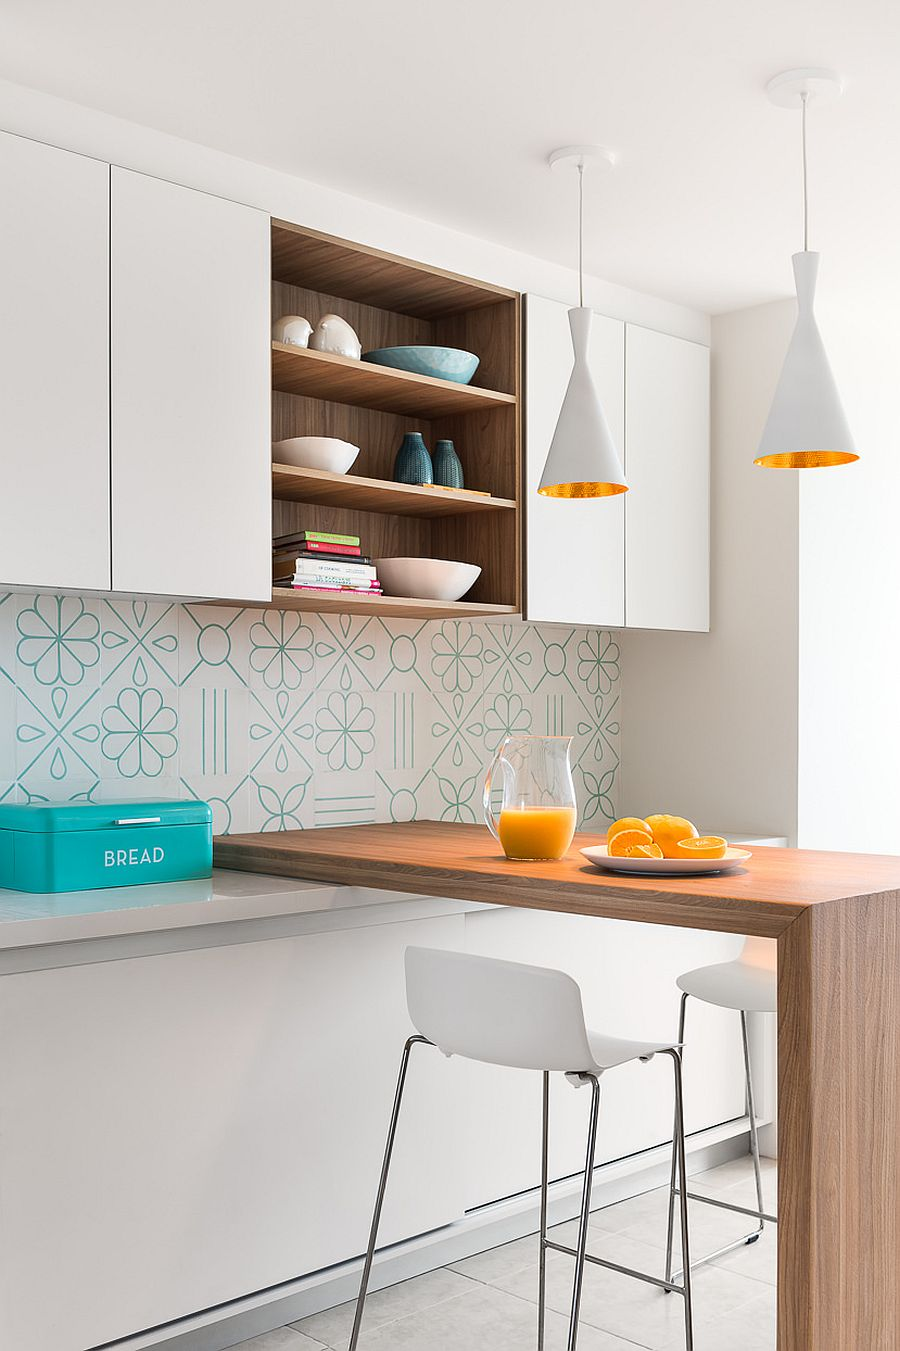 Tiles-of-the-backsplash-add-pattern-to-the-kitchen-in-white-with-a-monochromatic-look-29024